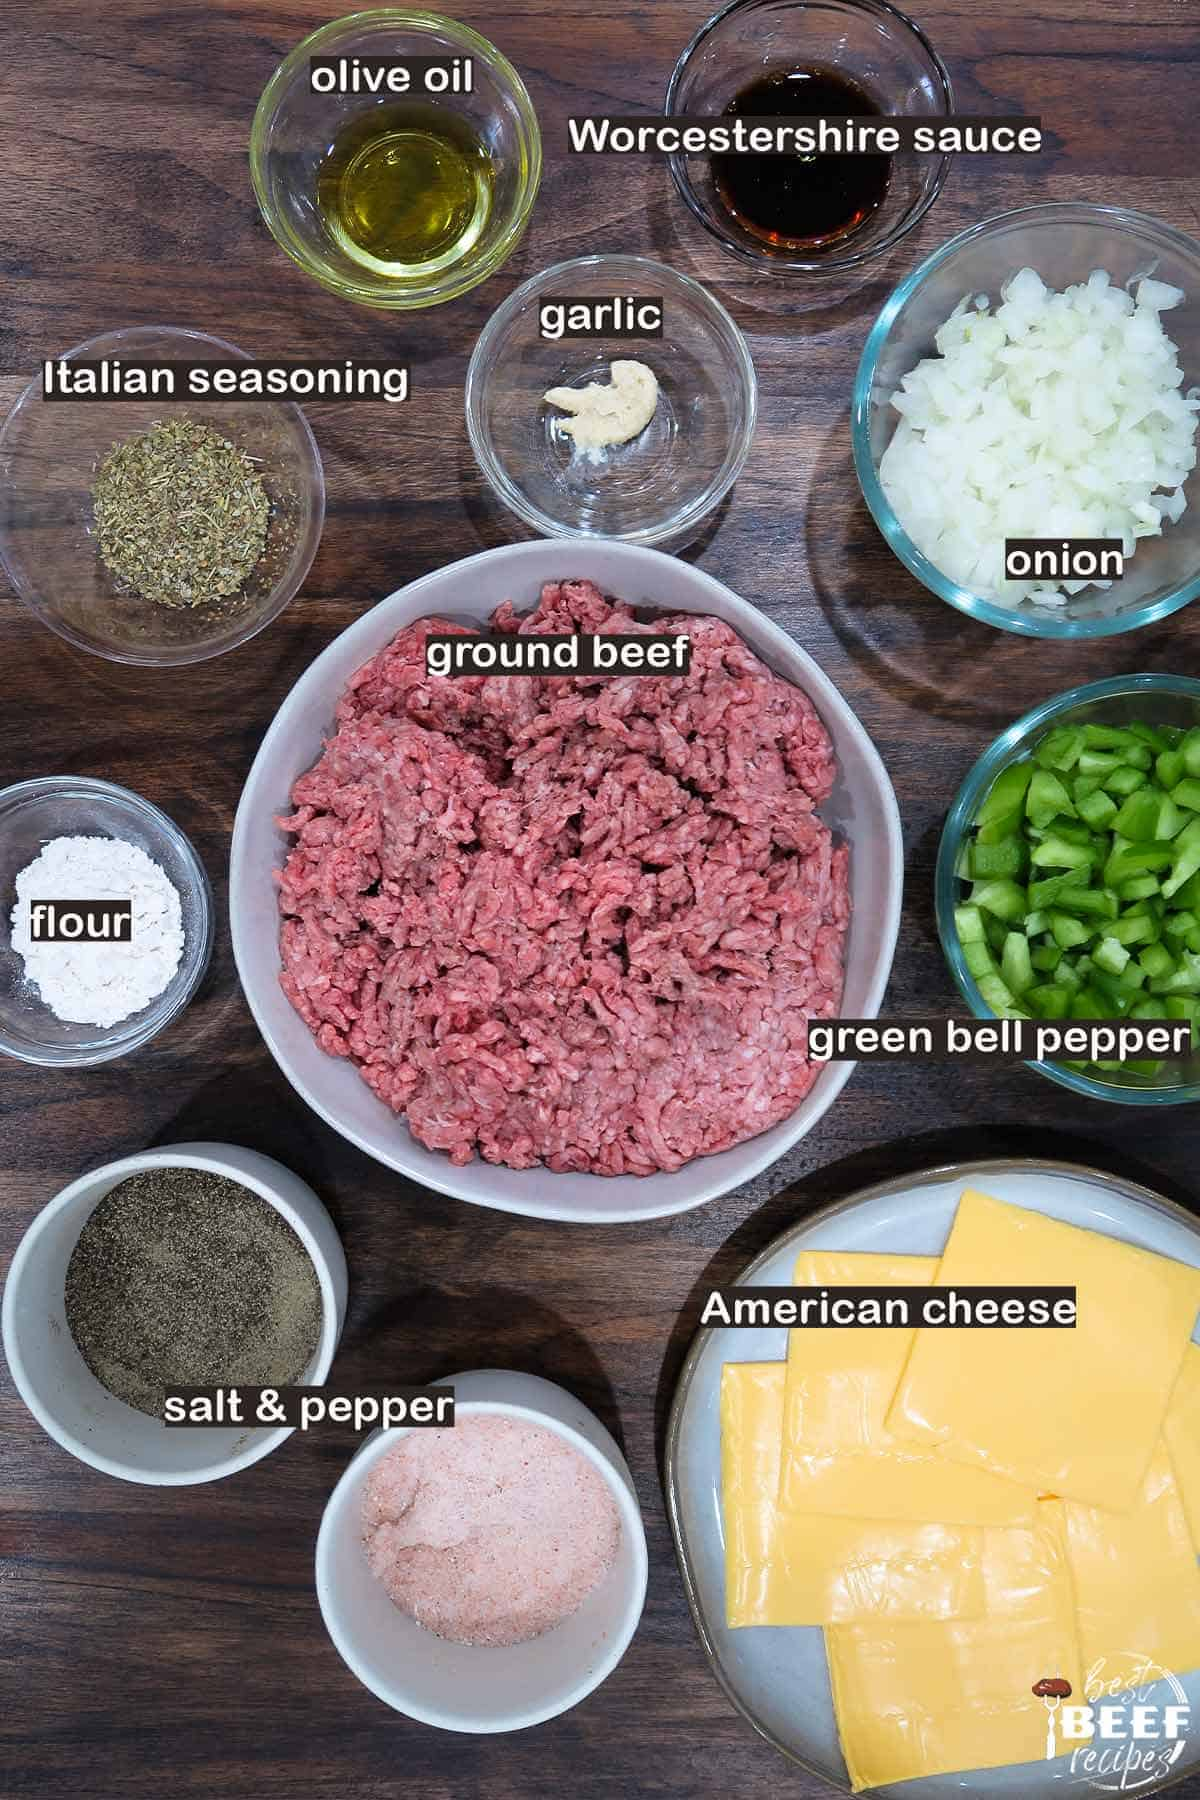 Ingredients to make instant pot philly cheesesteak sloppy joes laid out on a table with labels